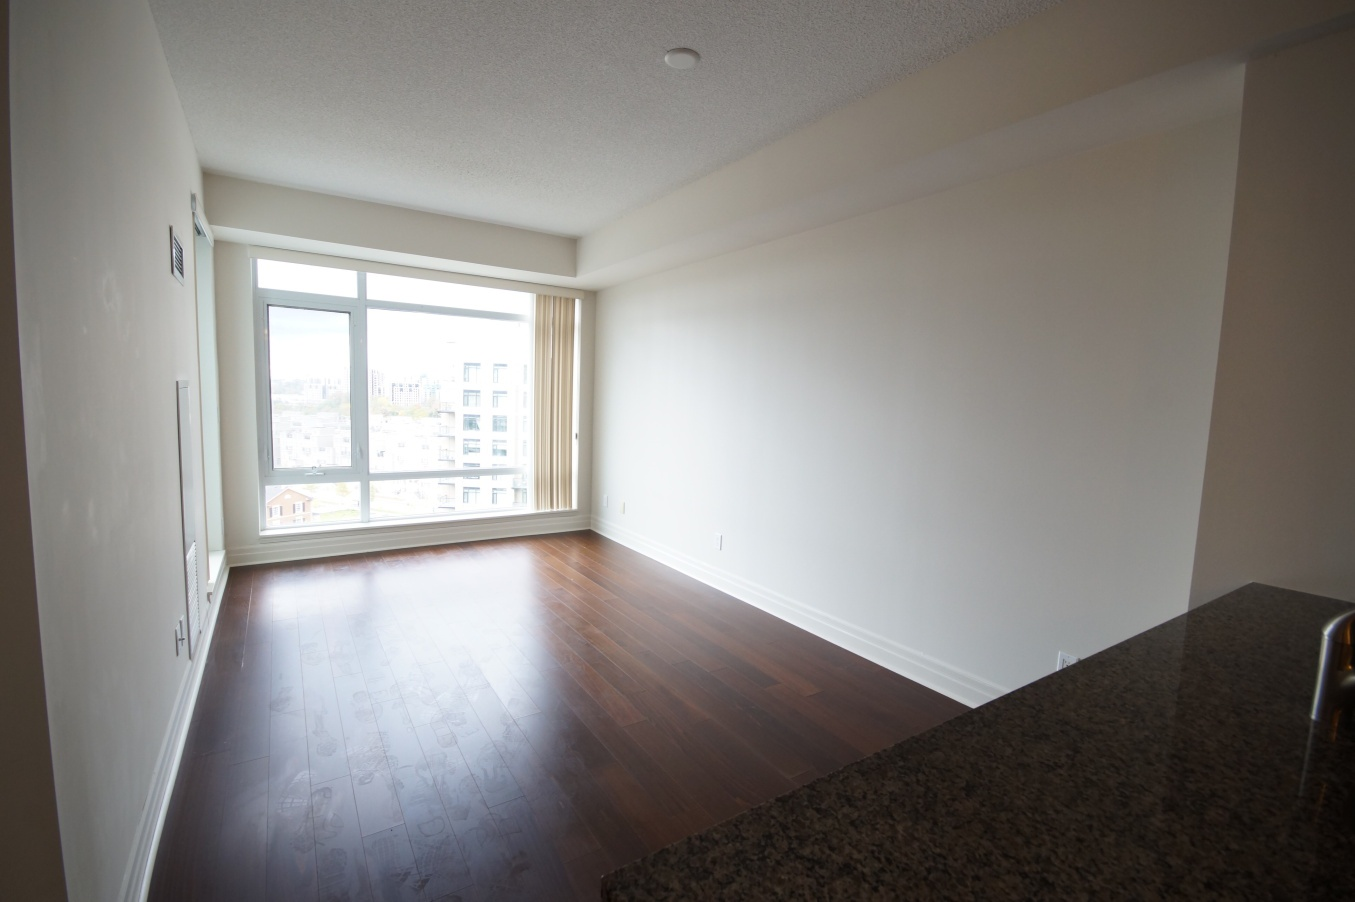 Condo for rent at 8130 Birchmount Rd, Markham, ON. This is the empty room with natural light and hardwood floor.